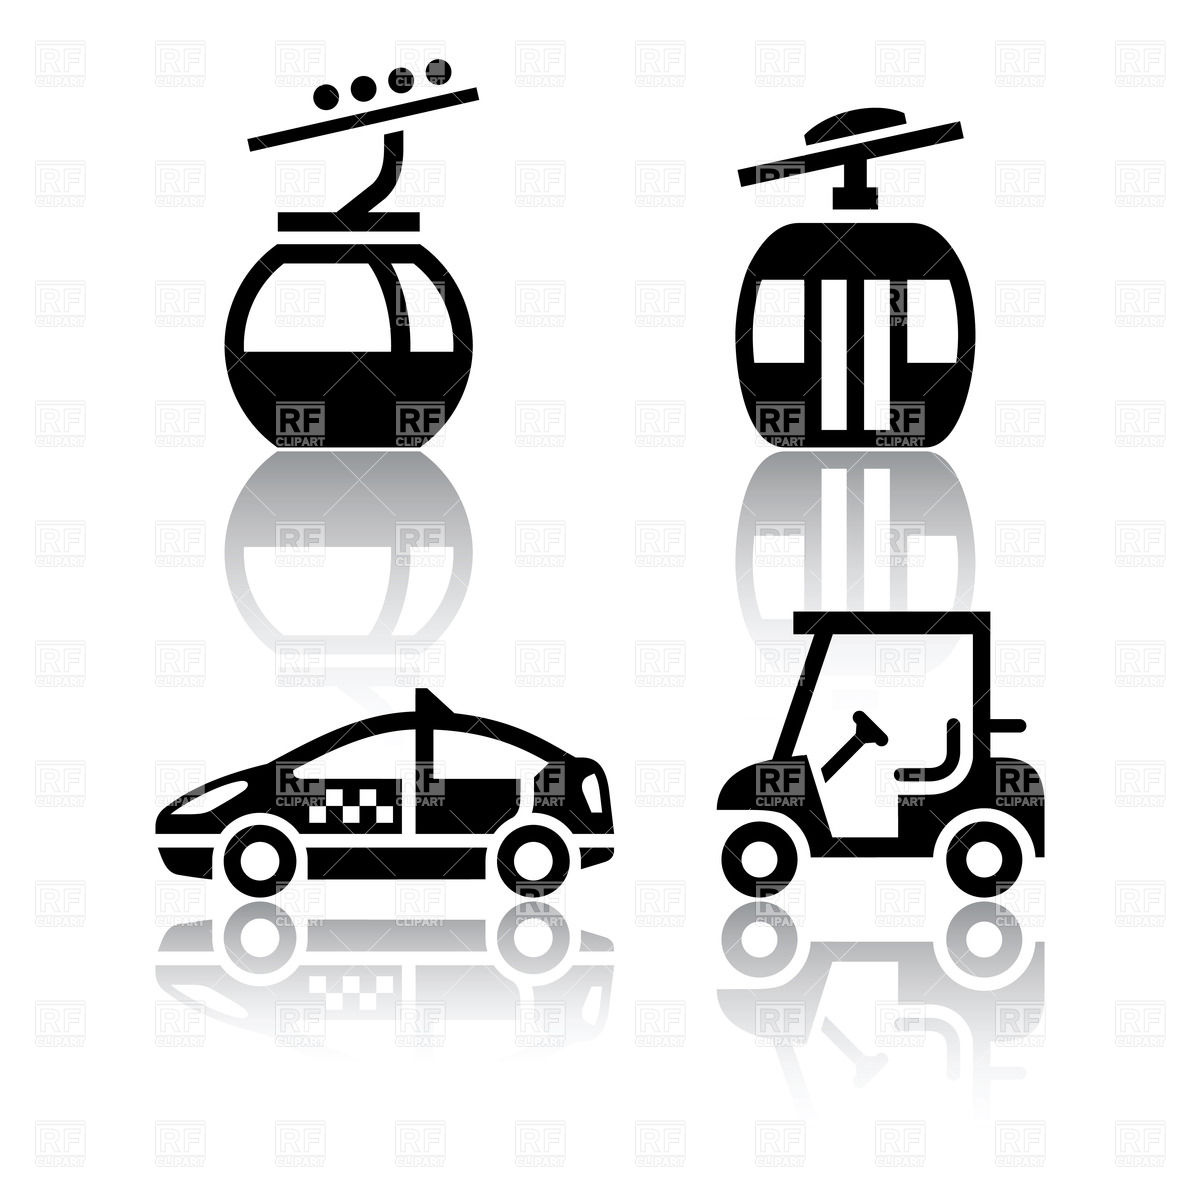 Overhead cable car, taxi and golf cart icons Vector Image #18113.